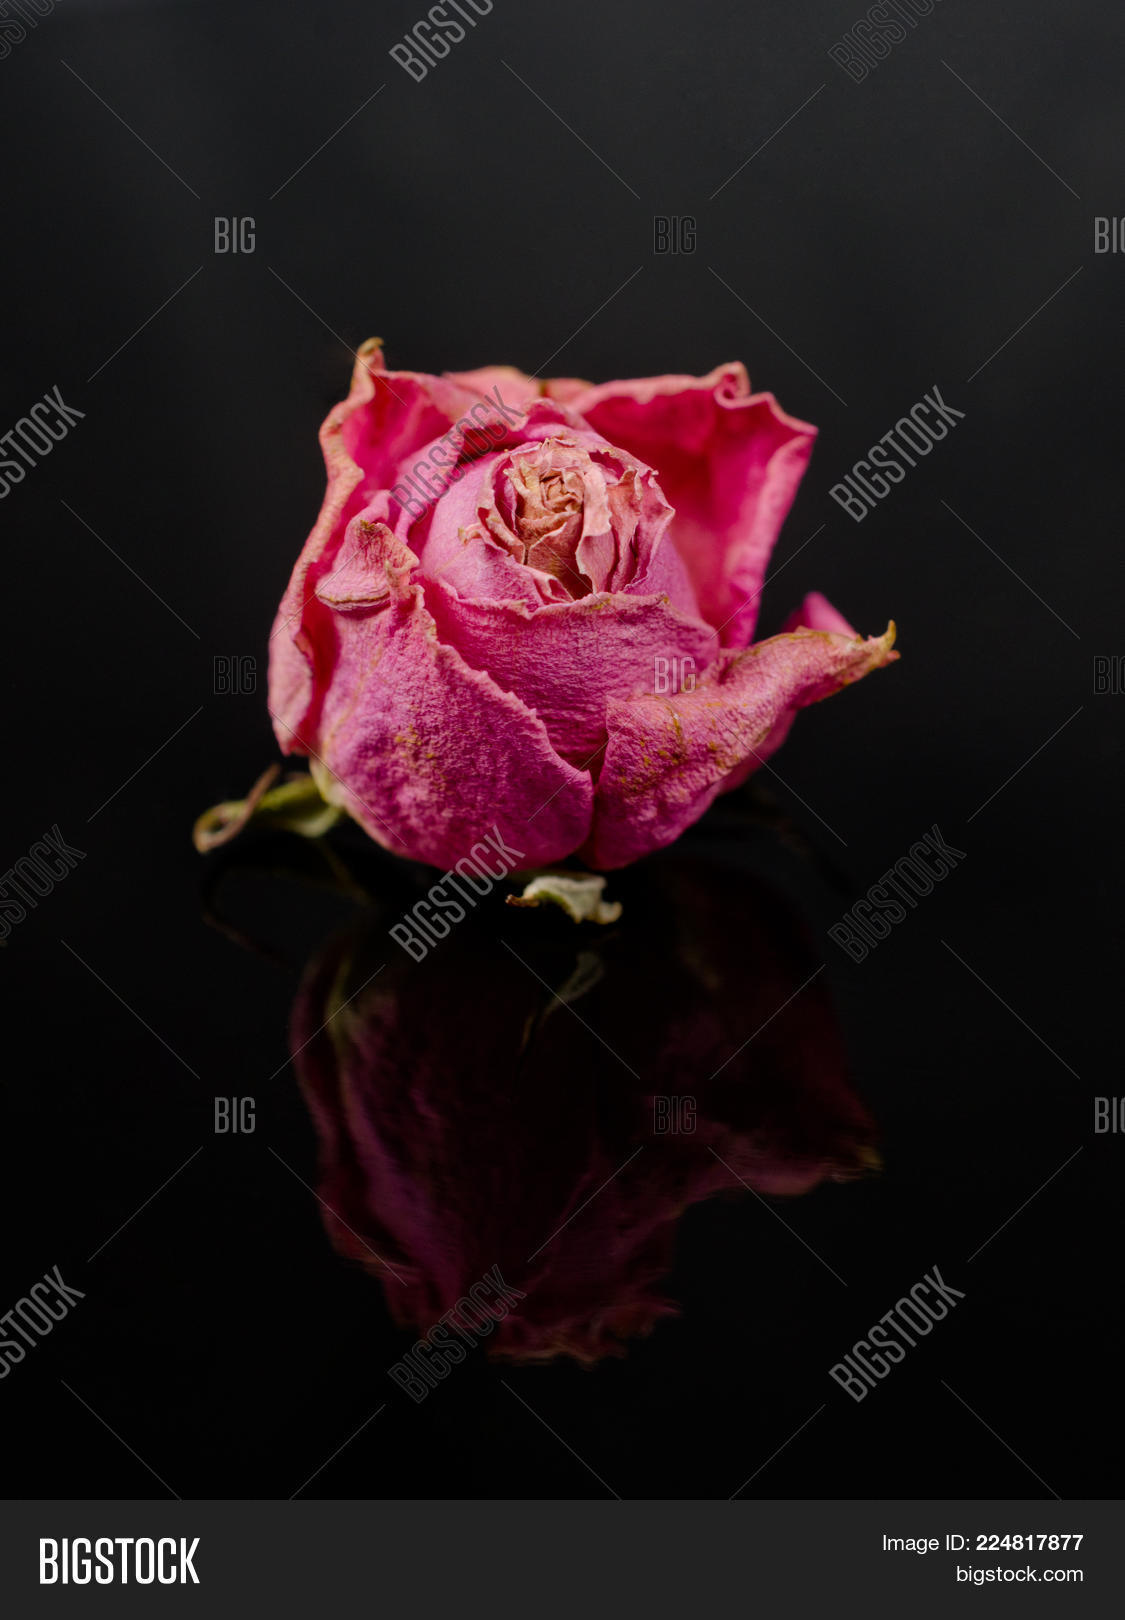 Bud beautiful pink image photo free trial bigstock bud of a beautiful pink faded dry rose on a black background with a reflection izmirmasajfo